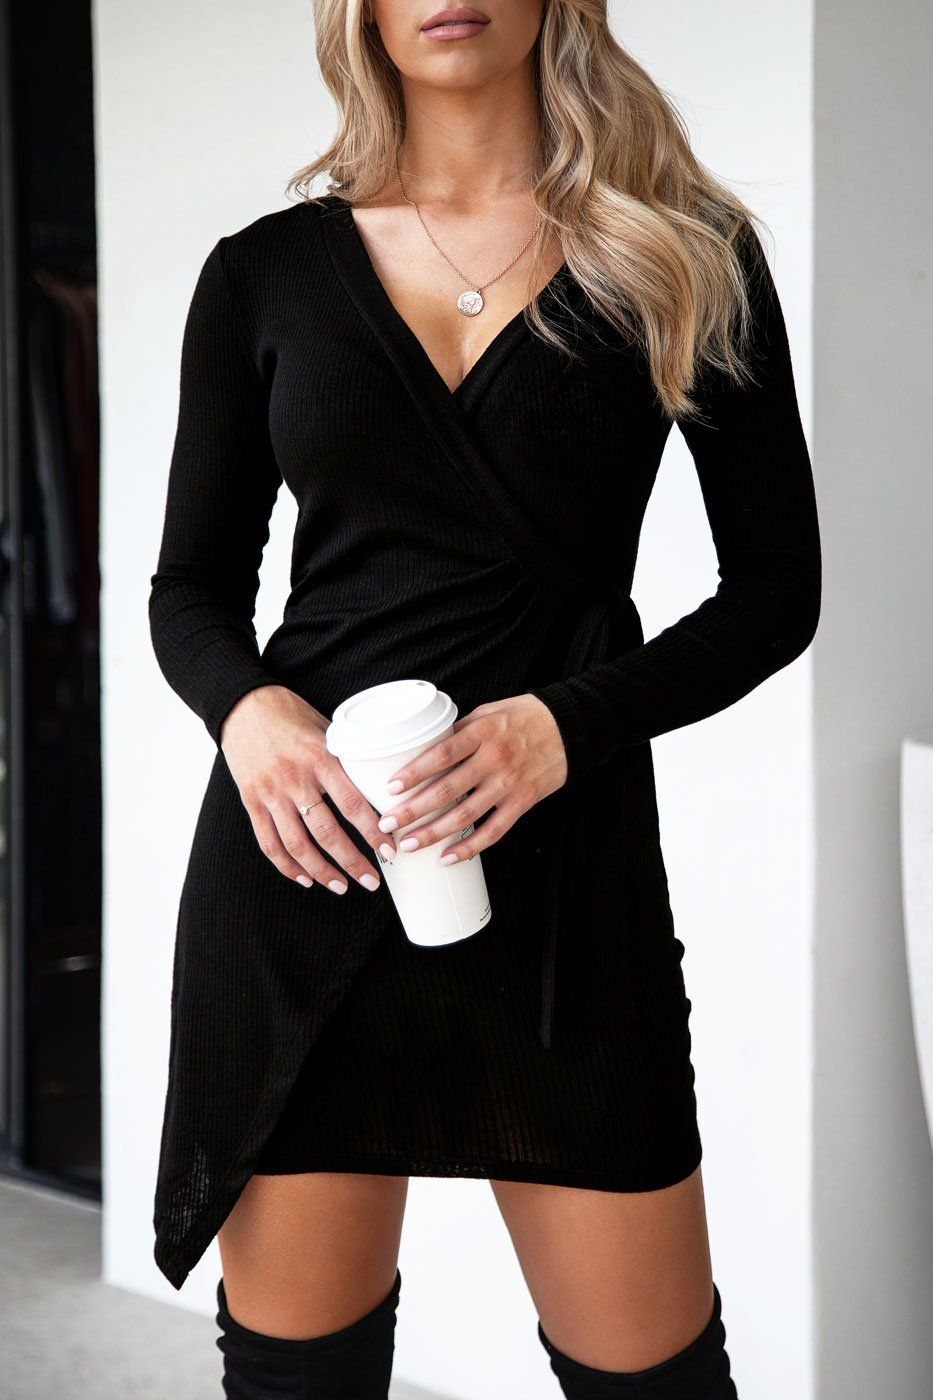 Georgia Black Ribbed Wrap Dress | That perfect dress for any occasion! The Georgia Black Ribbed Wrap Dress  features a flattering fit, hugging your body in all the right places,  an adorable tie and stretchy material so you can look and feel your  best. Pair with thigh high booties for a sexy night out look!